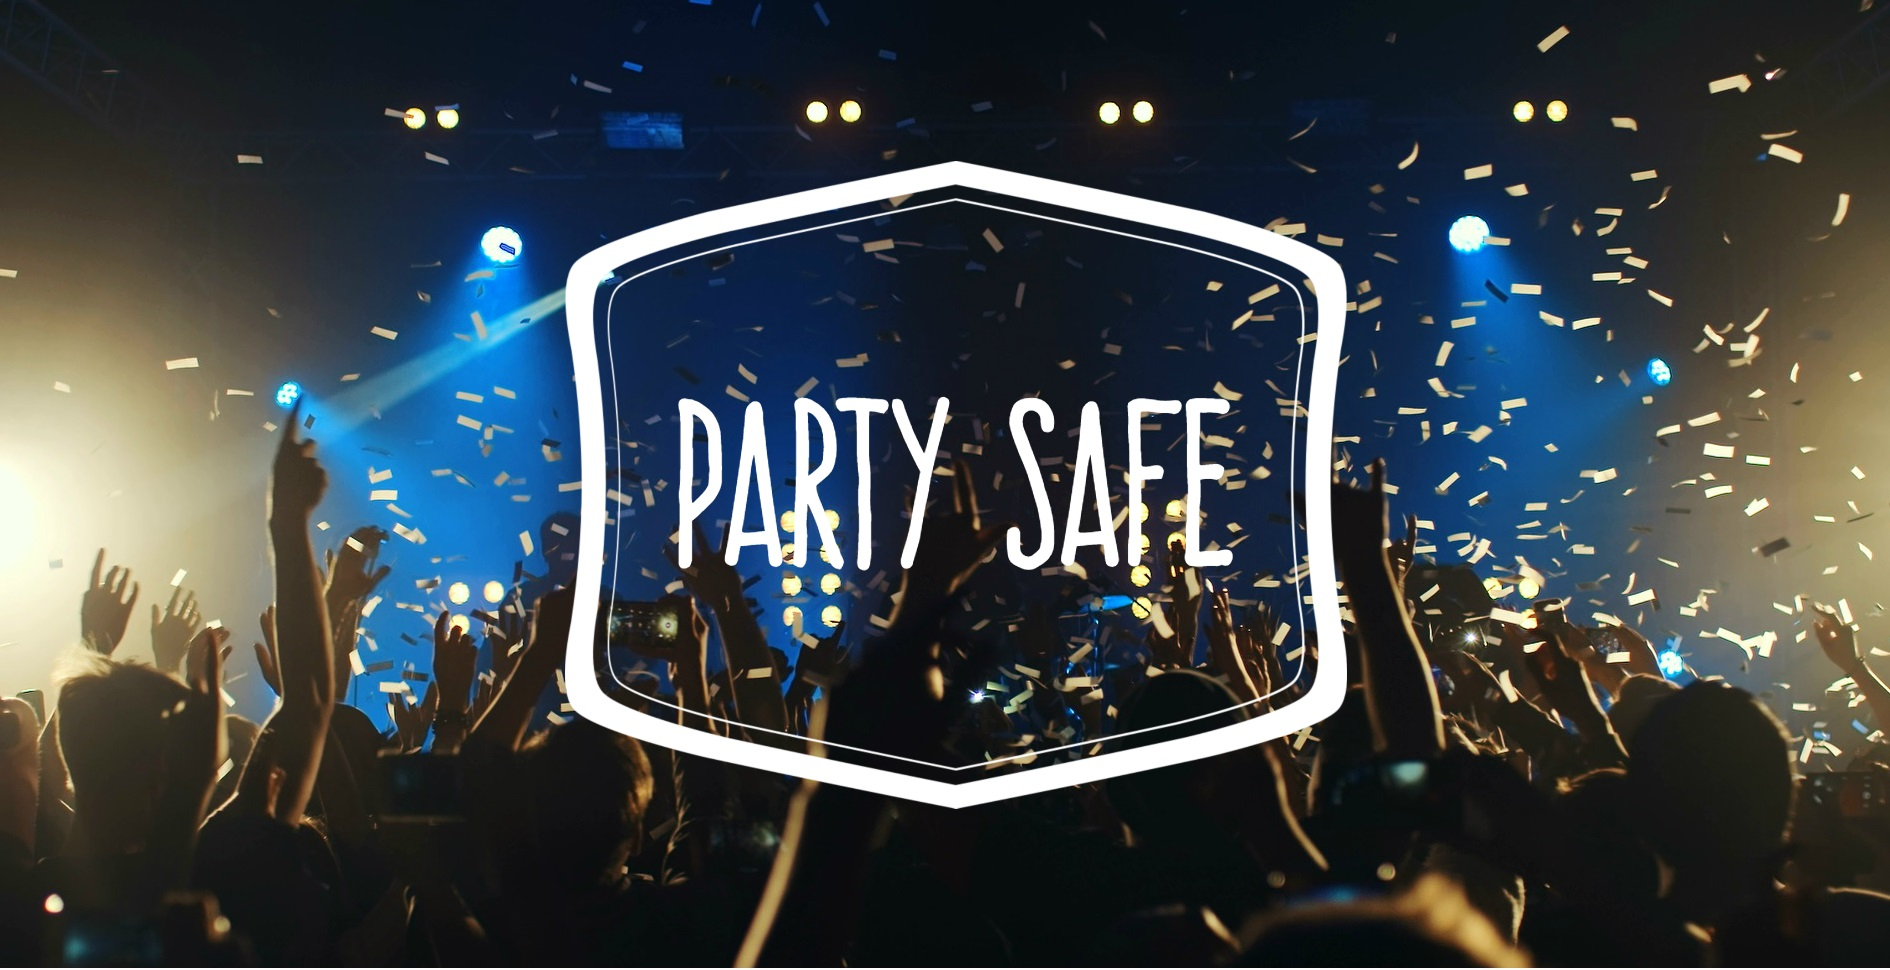 Party_safe